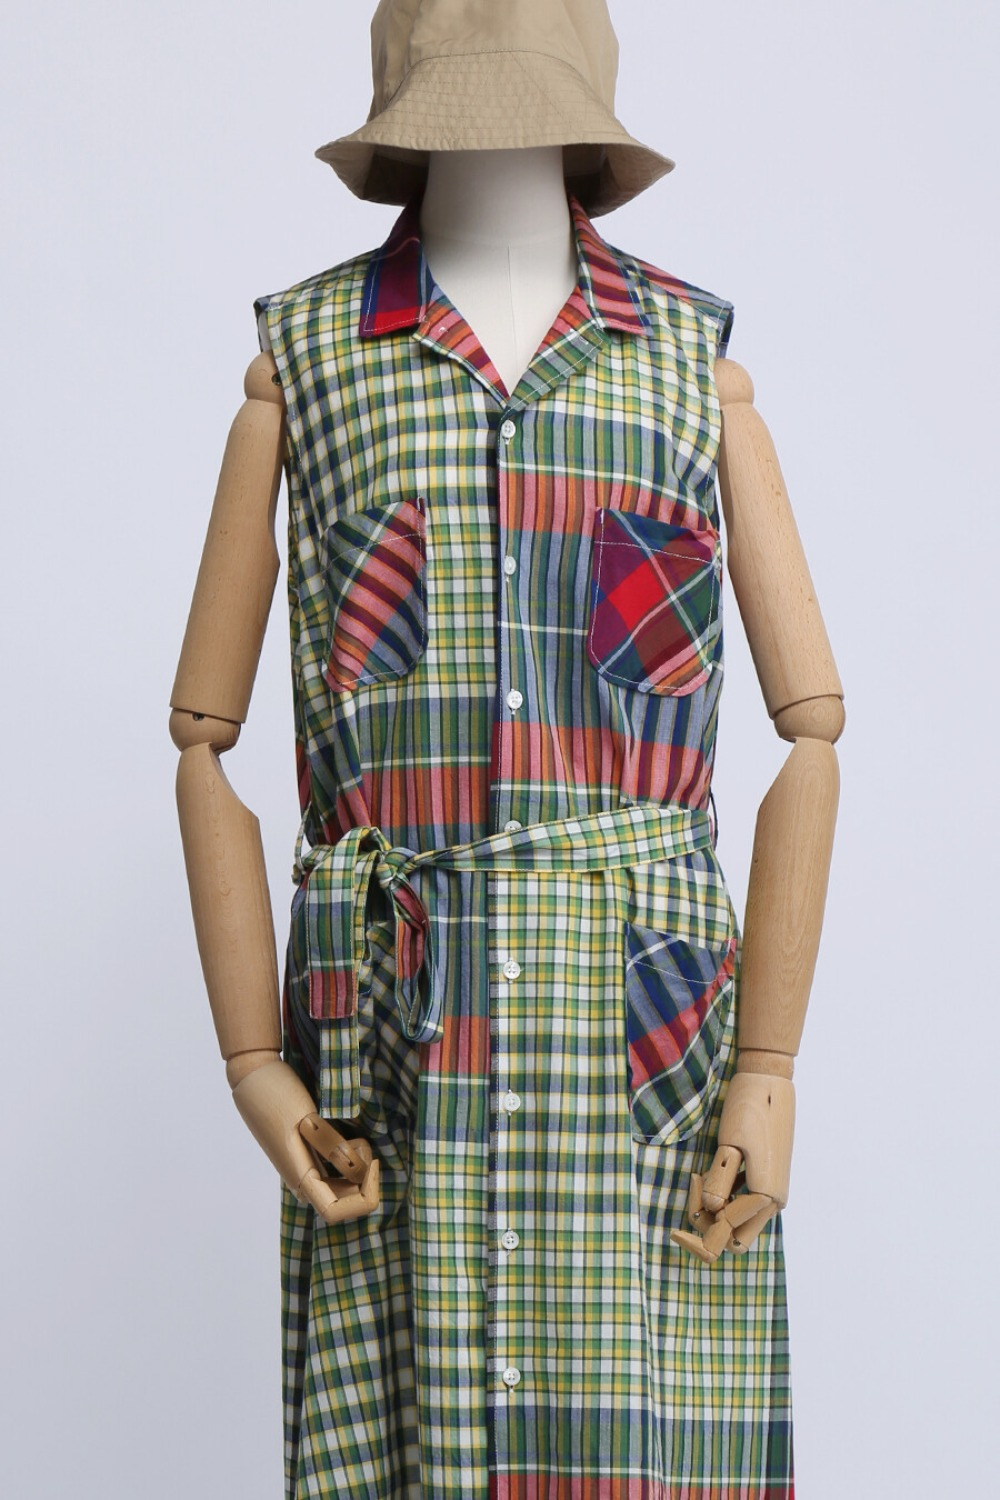 FWK CLASSIC DRESS RED BLUE GREEN BIG MADRAS PLAID